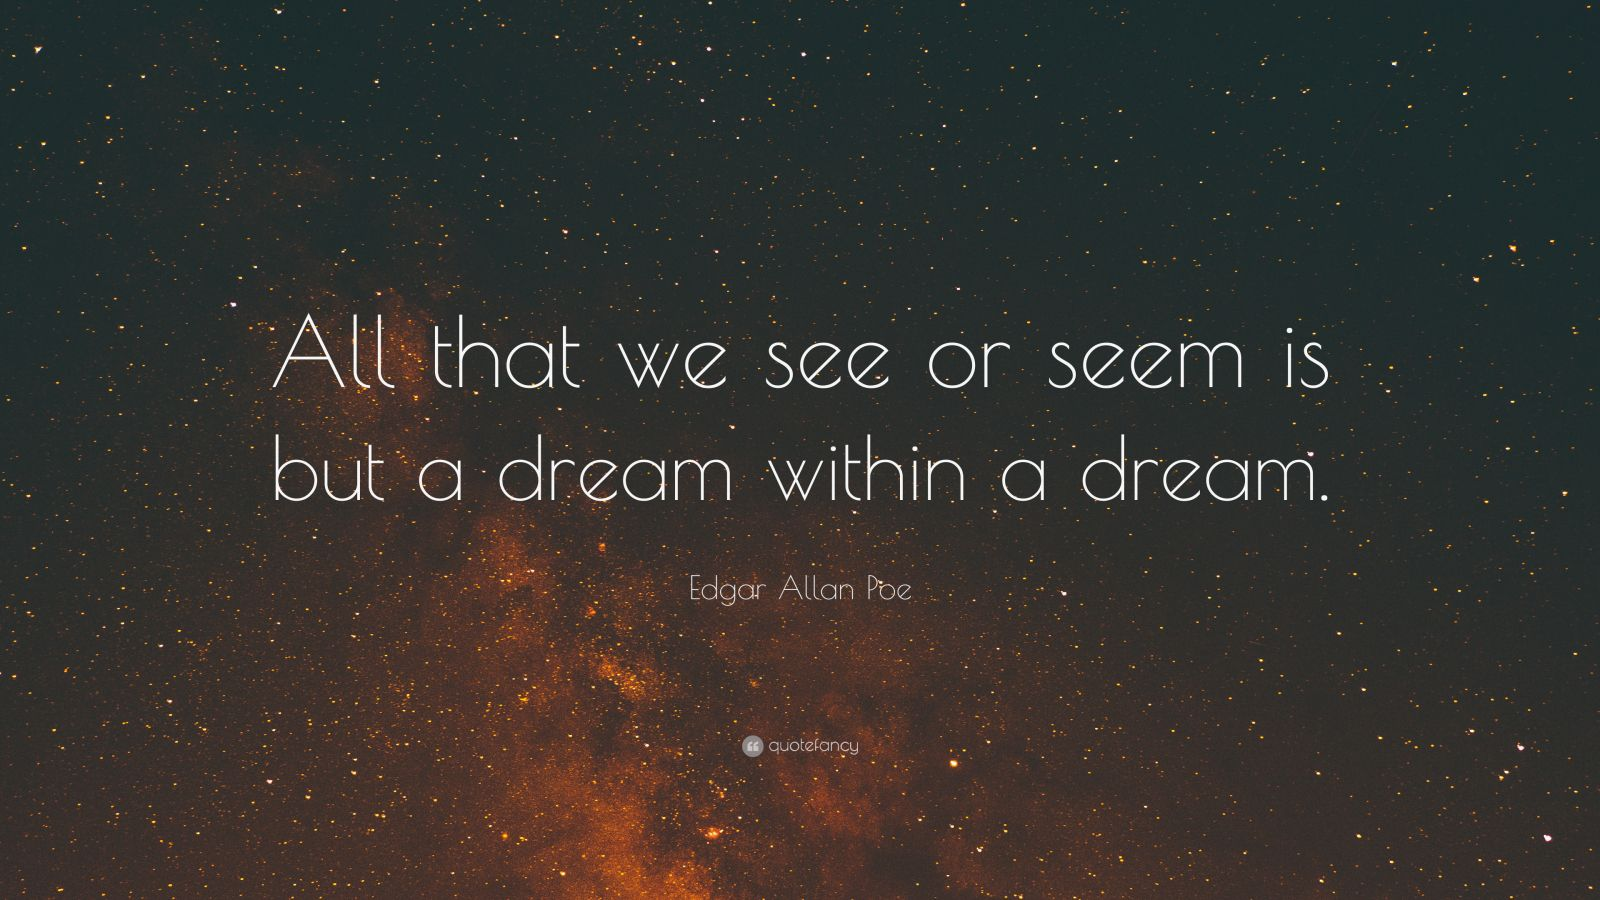 Theodore Roosevelt Wallpaper Quote Edgar Allan Poe Quote All That We See Or Seem Is But A